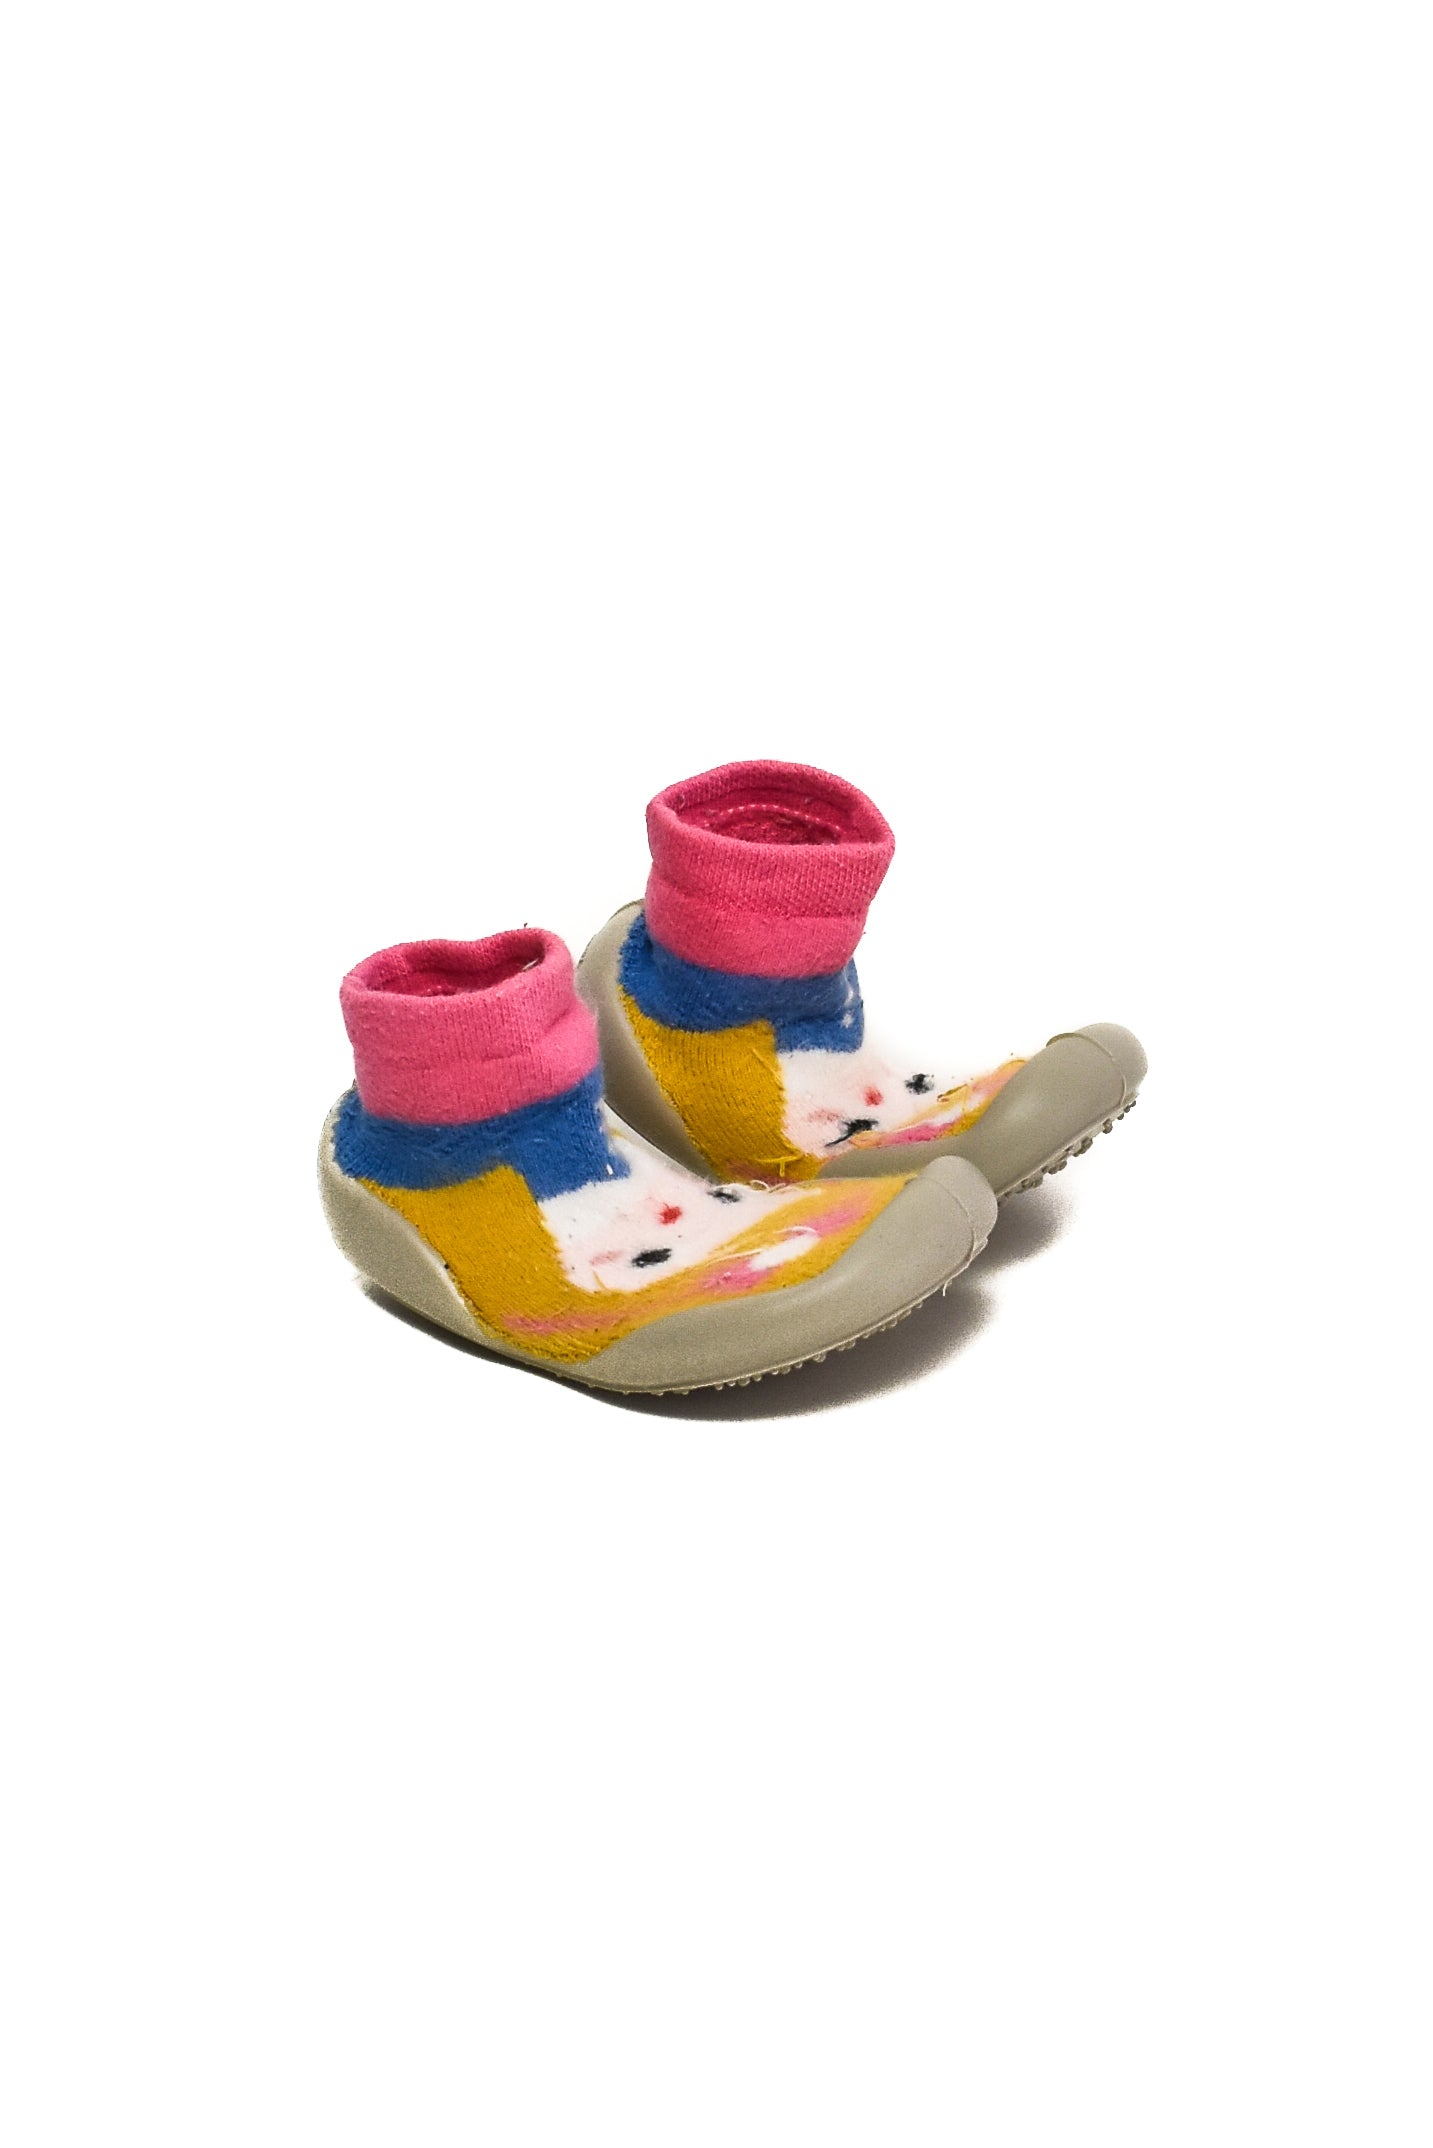 10006648 Collegien Baby~ Shoes 12-18M (EU 20-21) at Retykle